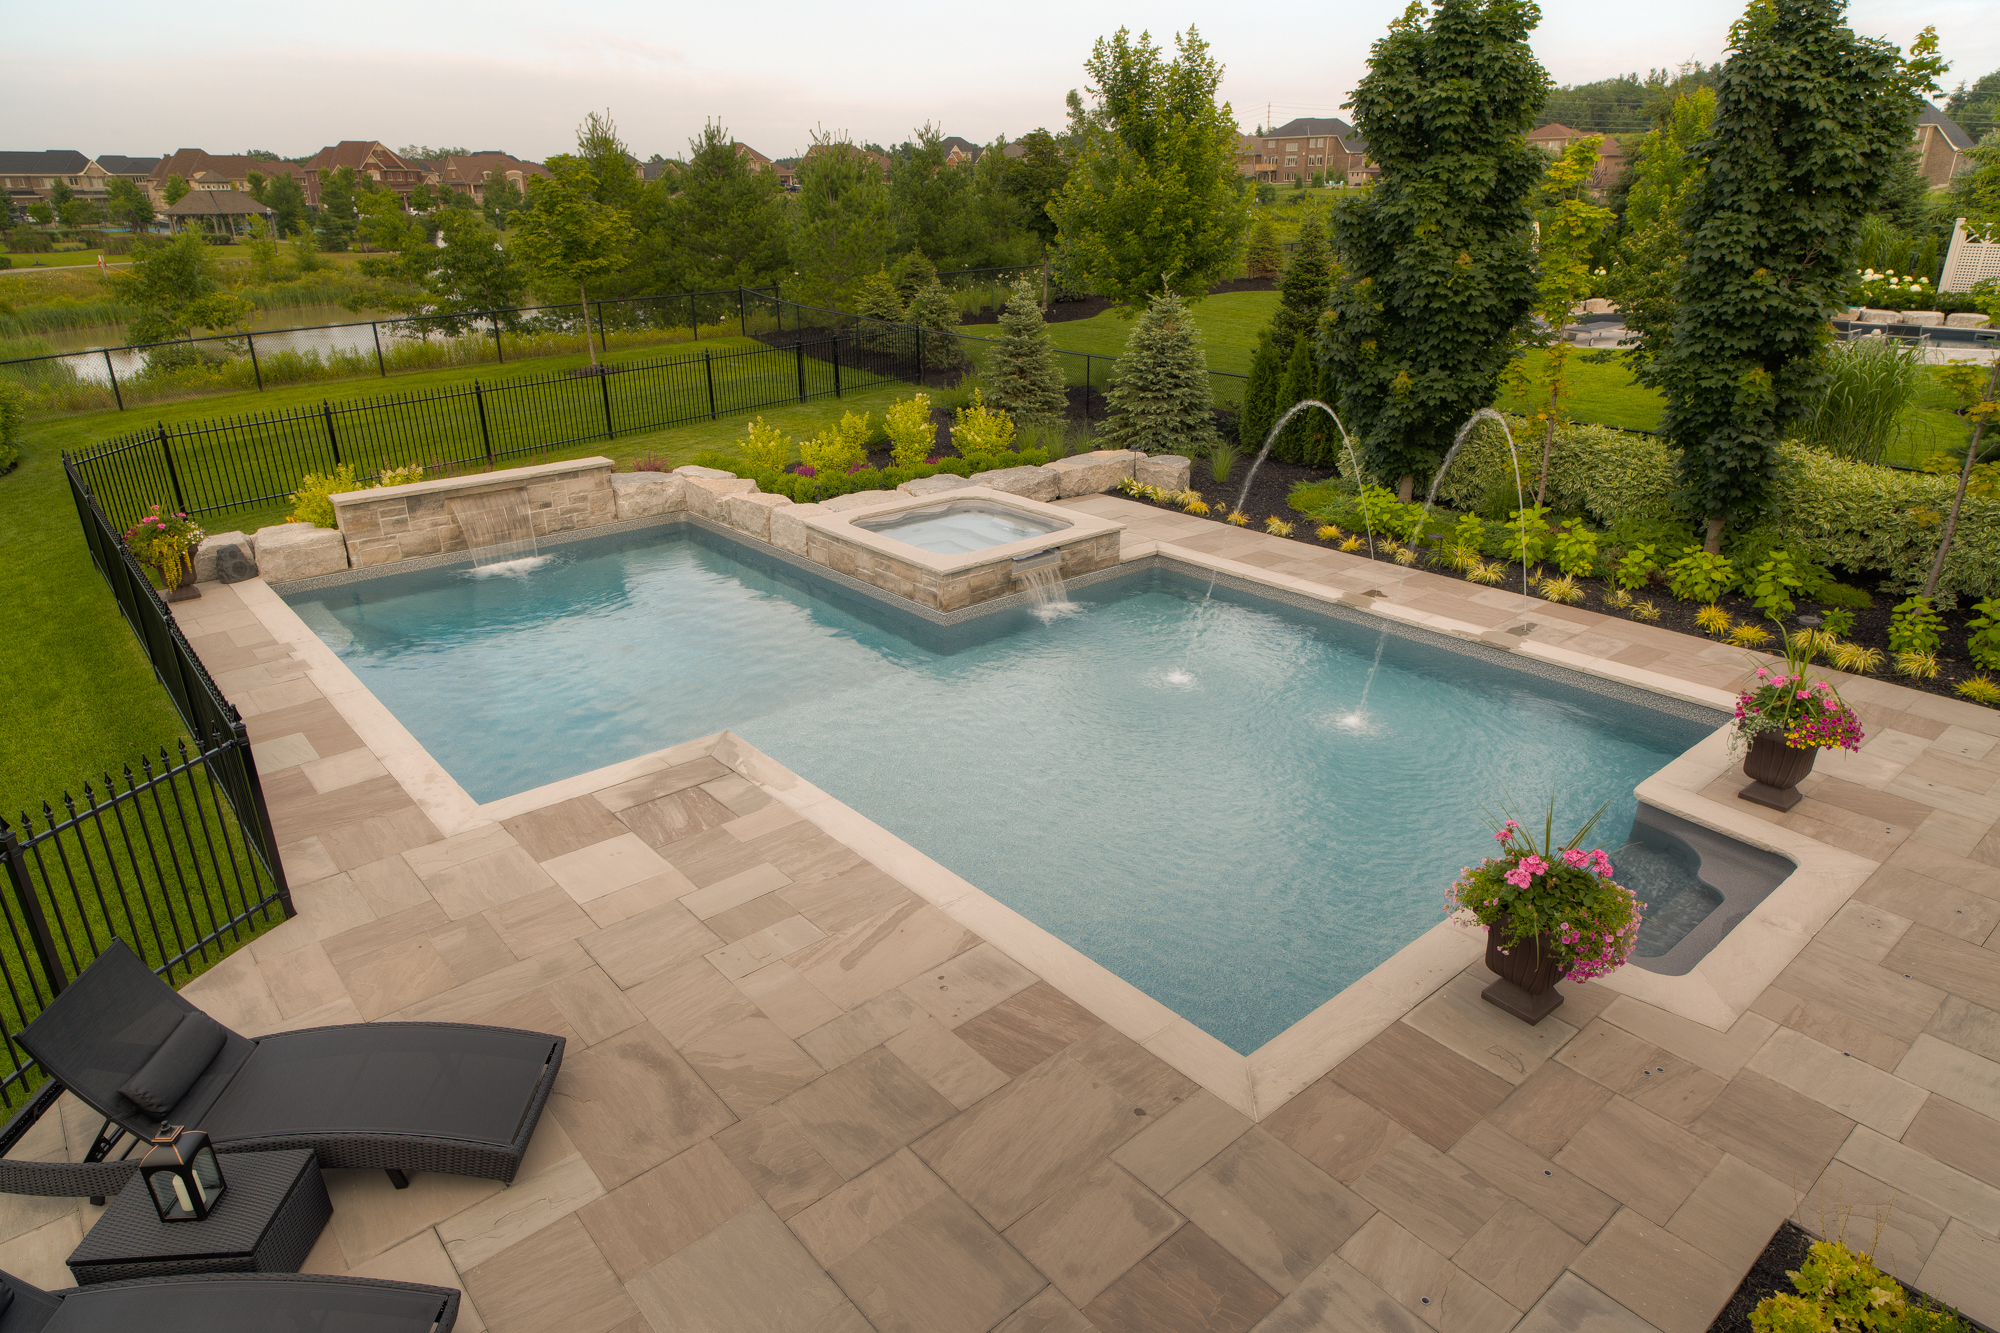 A custom swimming pool with deck jets water features